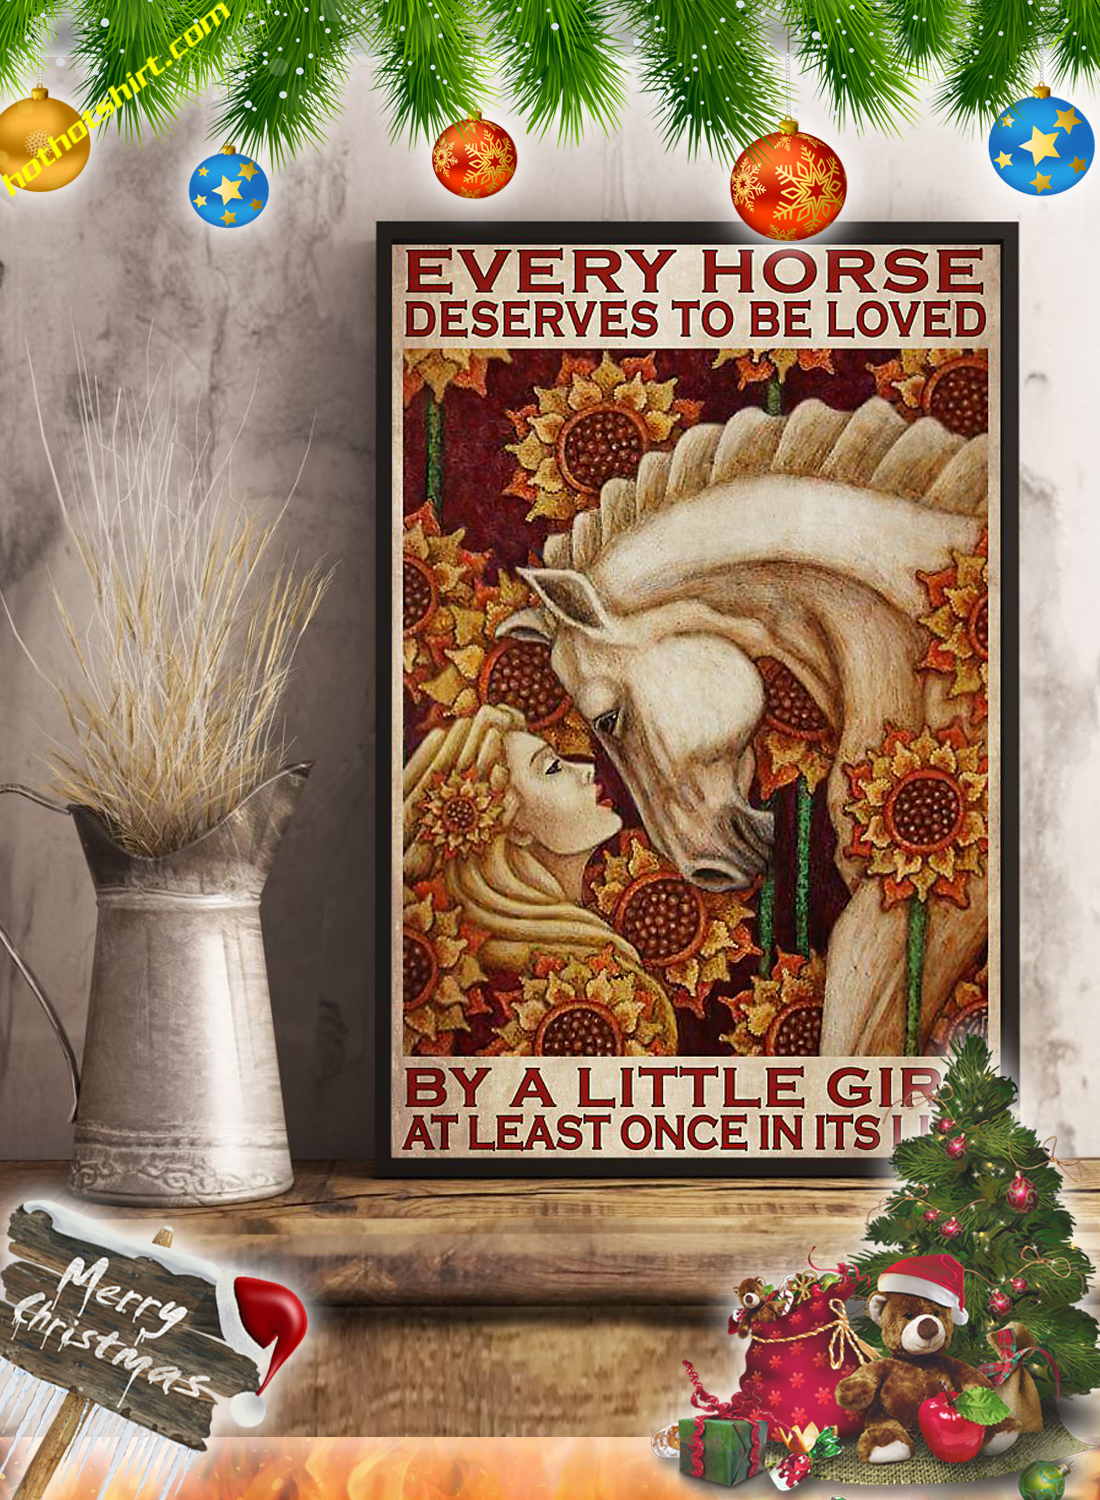 Every horse deserves to be loved by a little girl at least once in its life poster 3